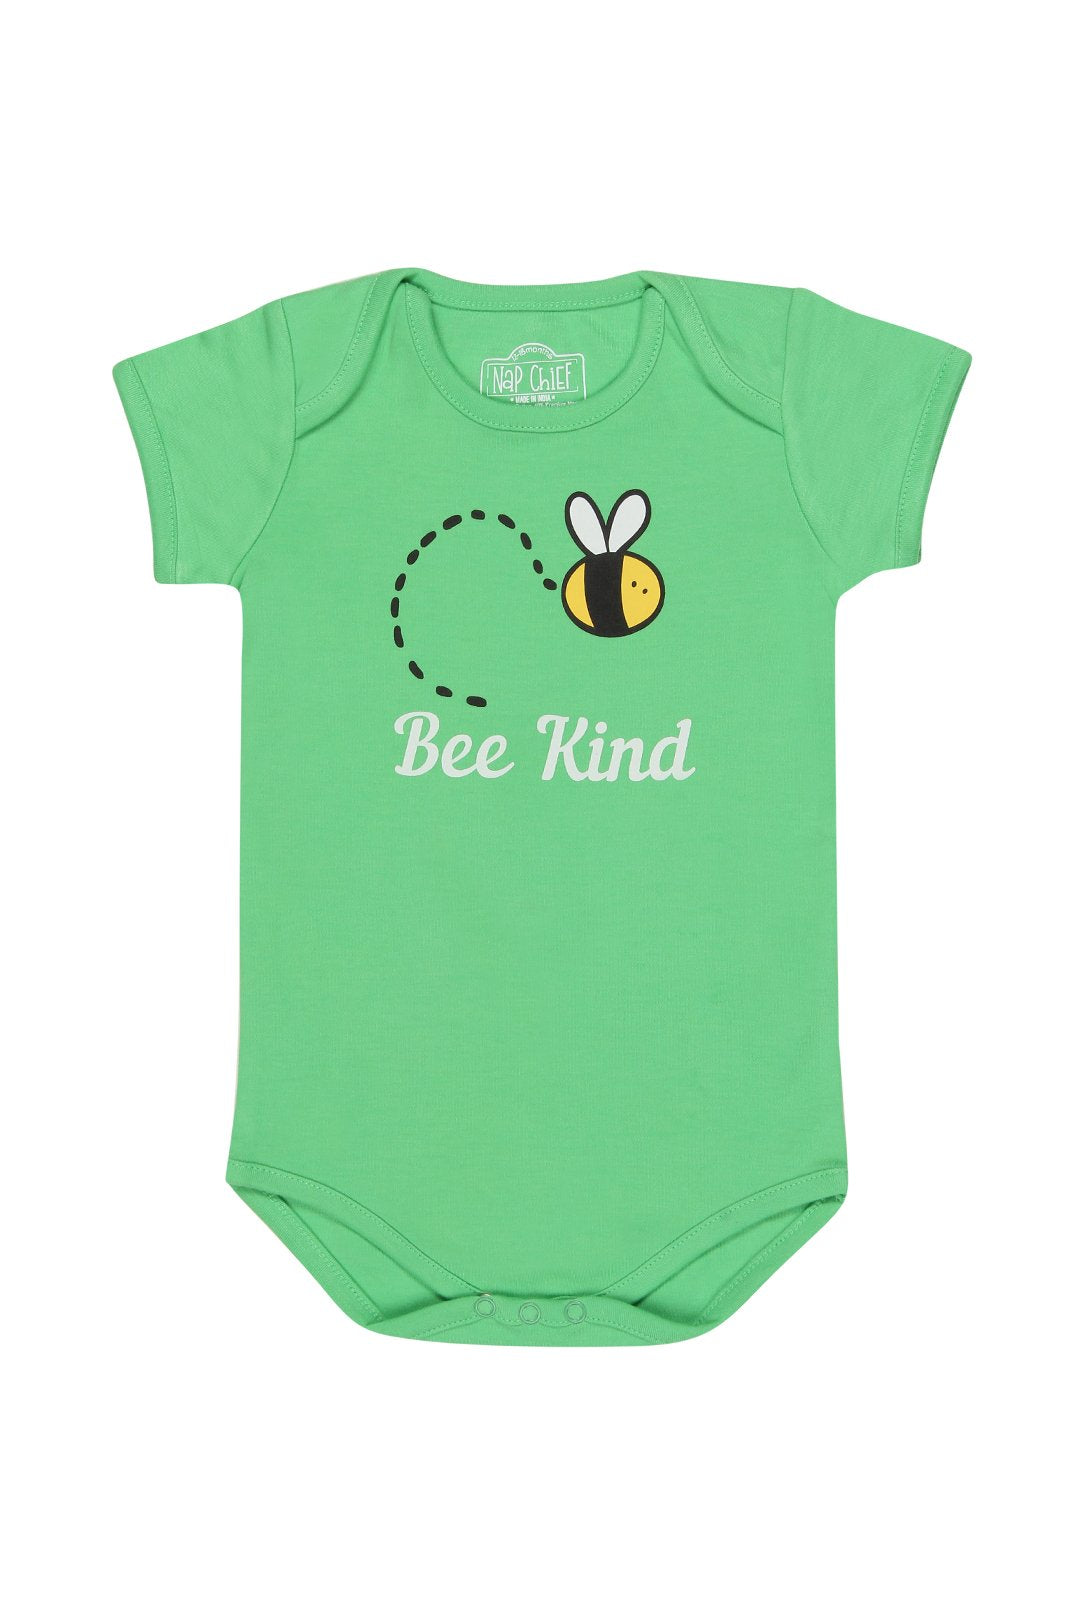 Bee Kind Romper - Nap Chief